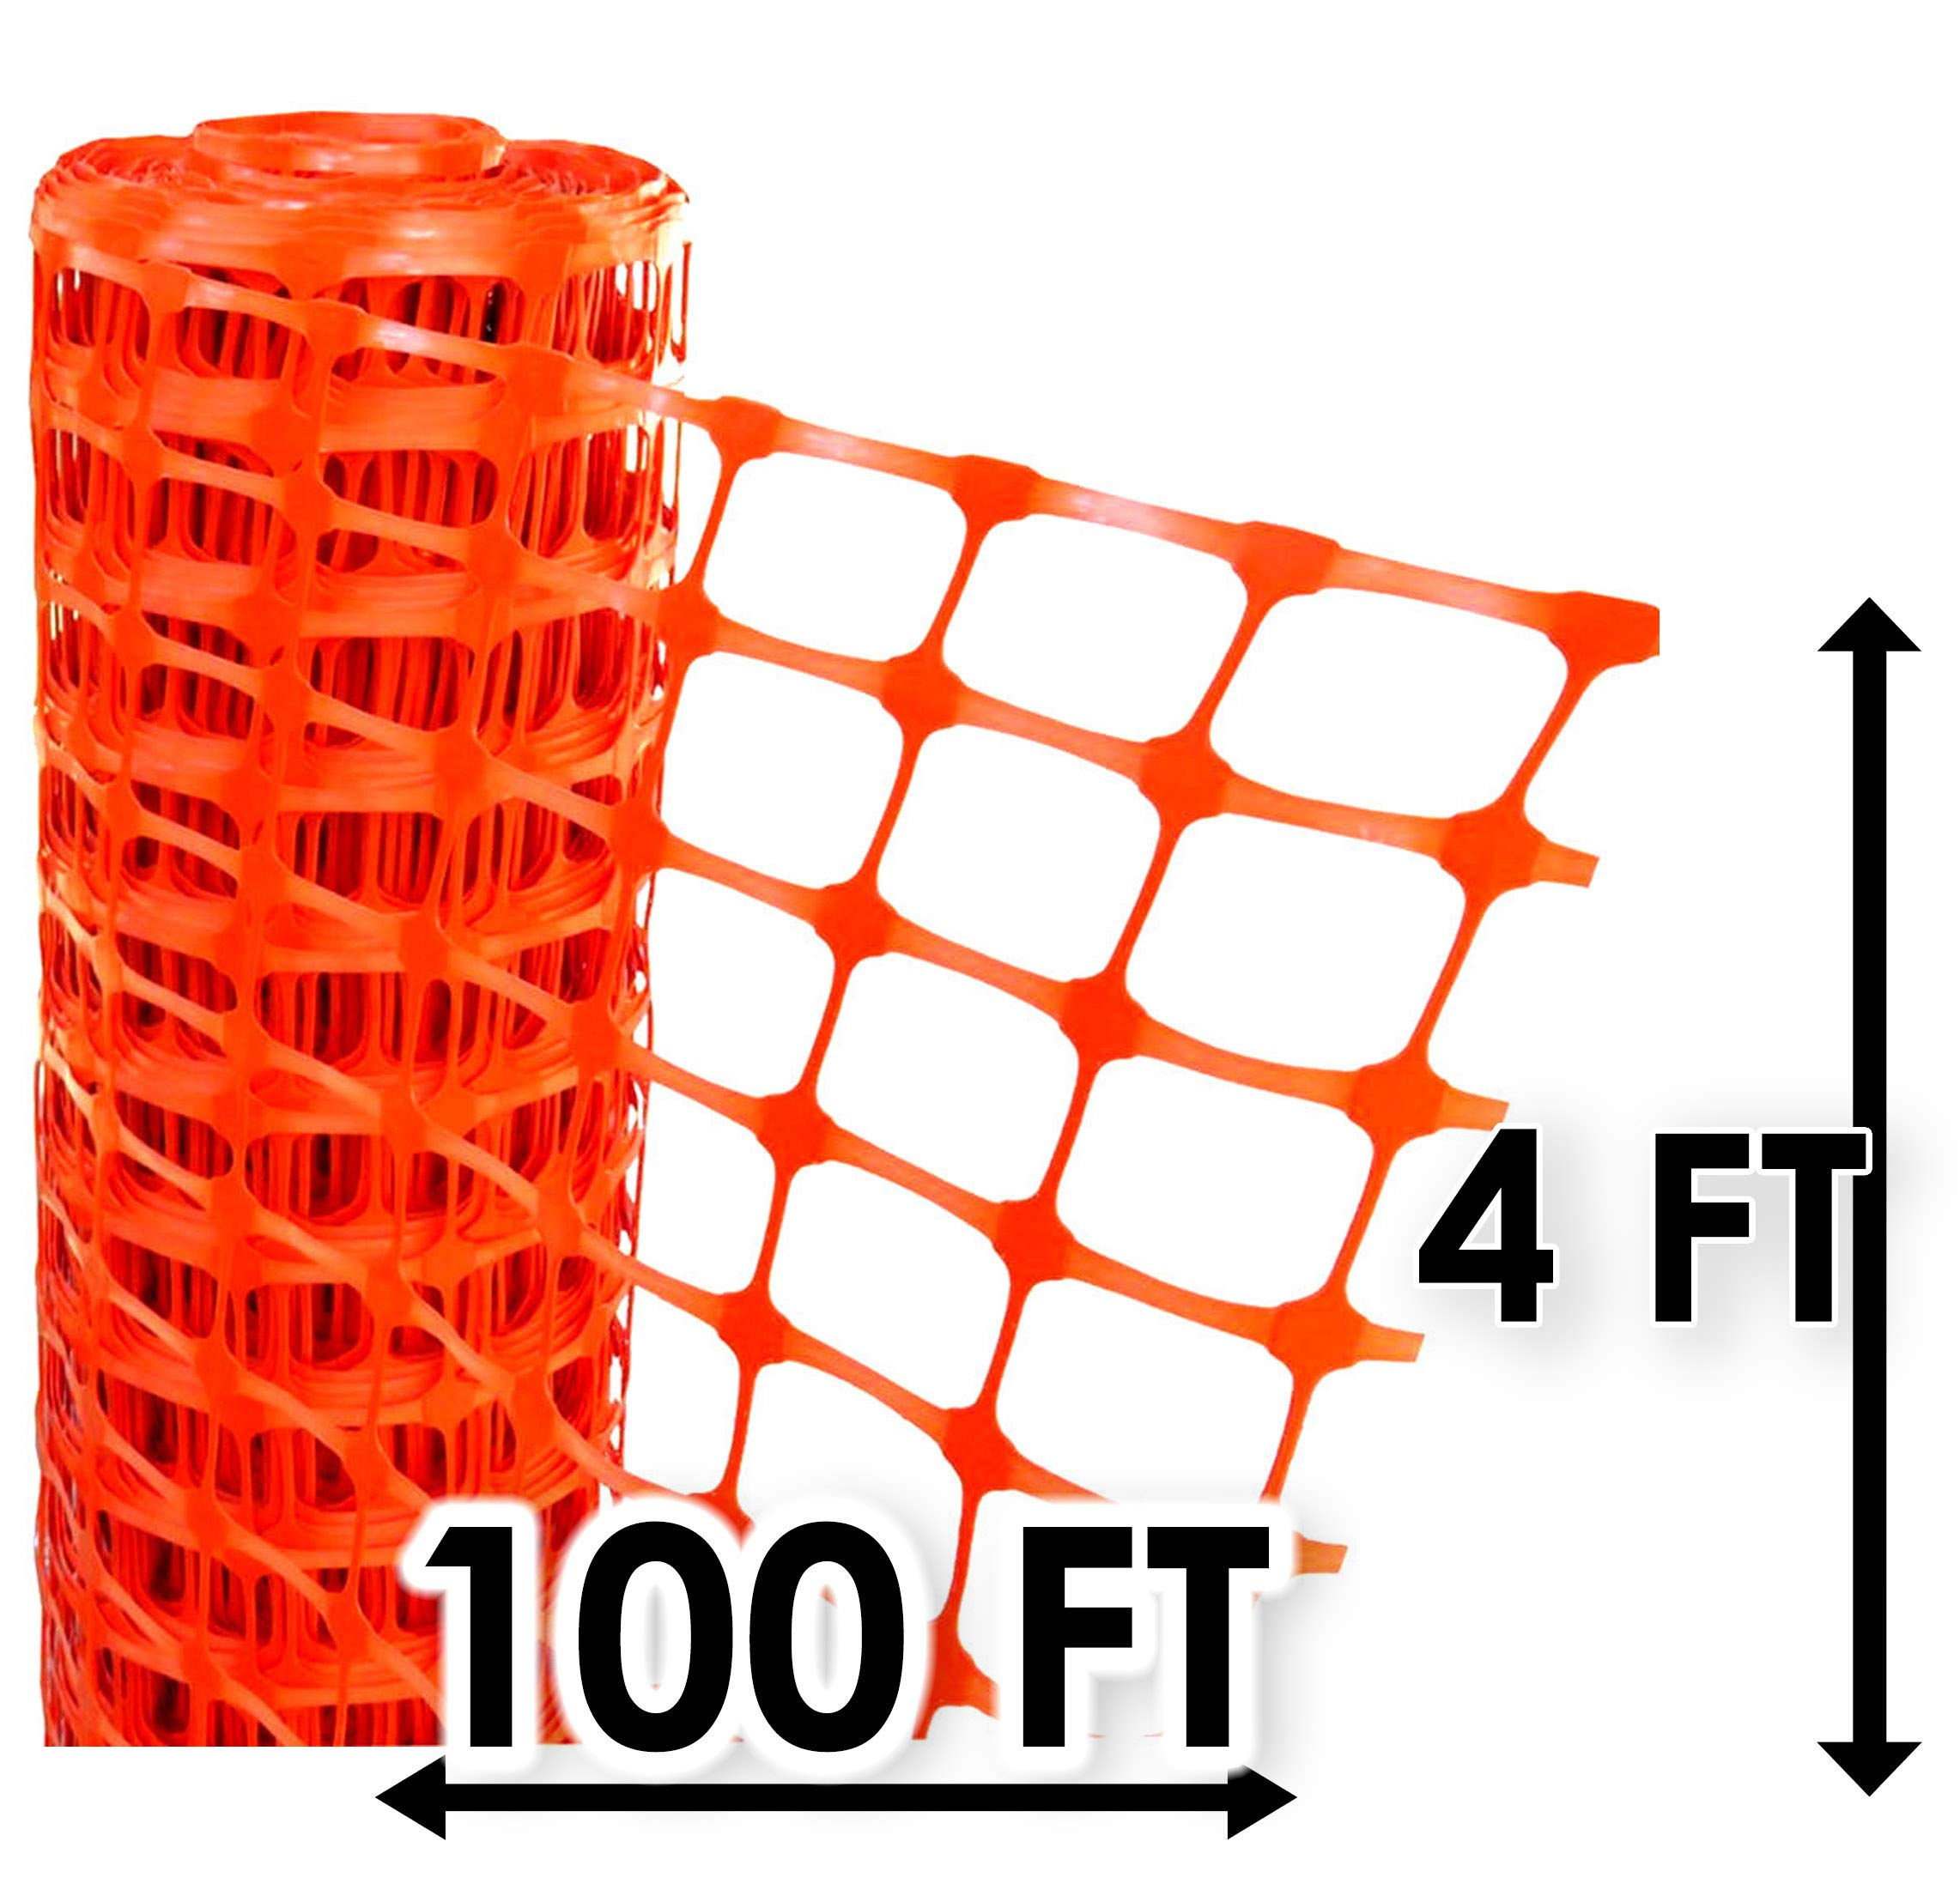 Electriduct Plastic Construction Fencing: 100 Feet Orange Safety Barrier Fence Roll by Electriduct